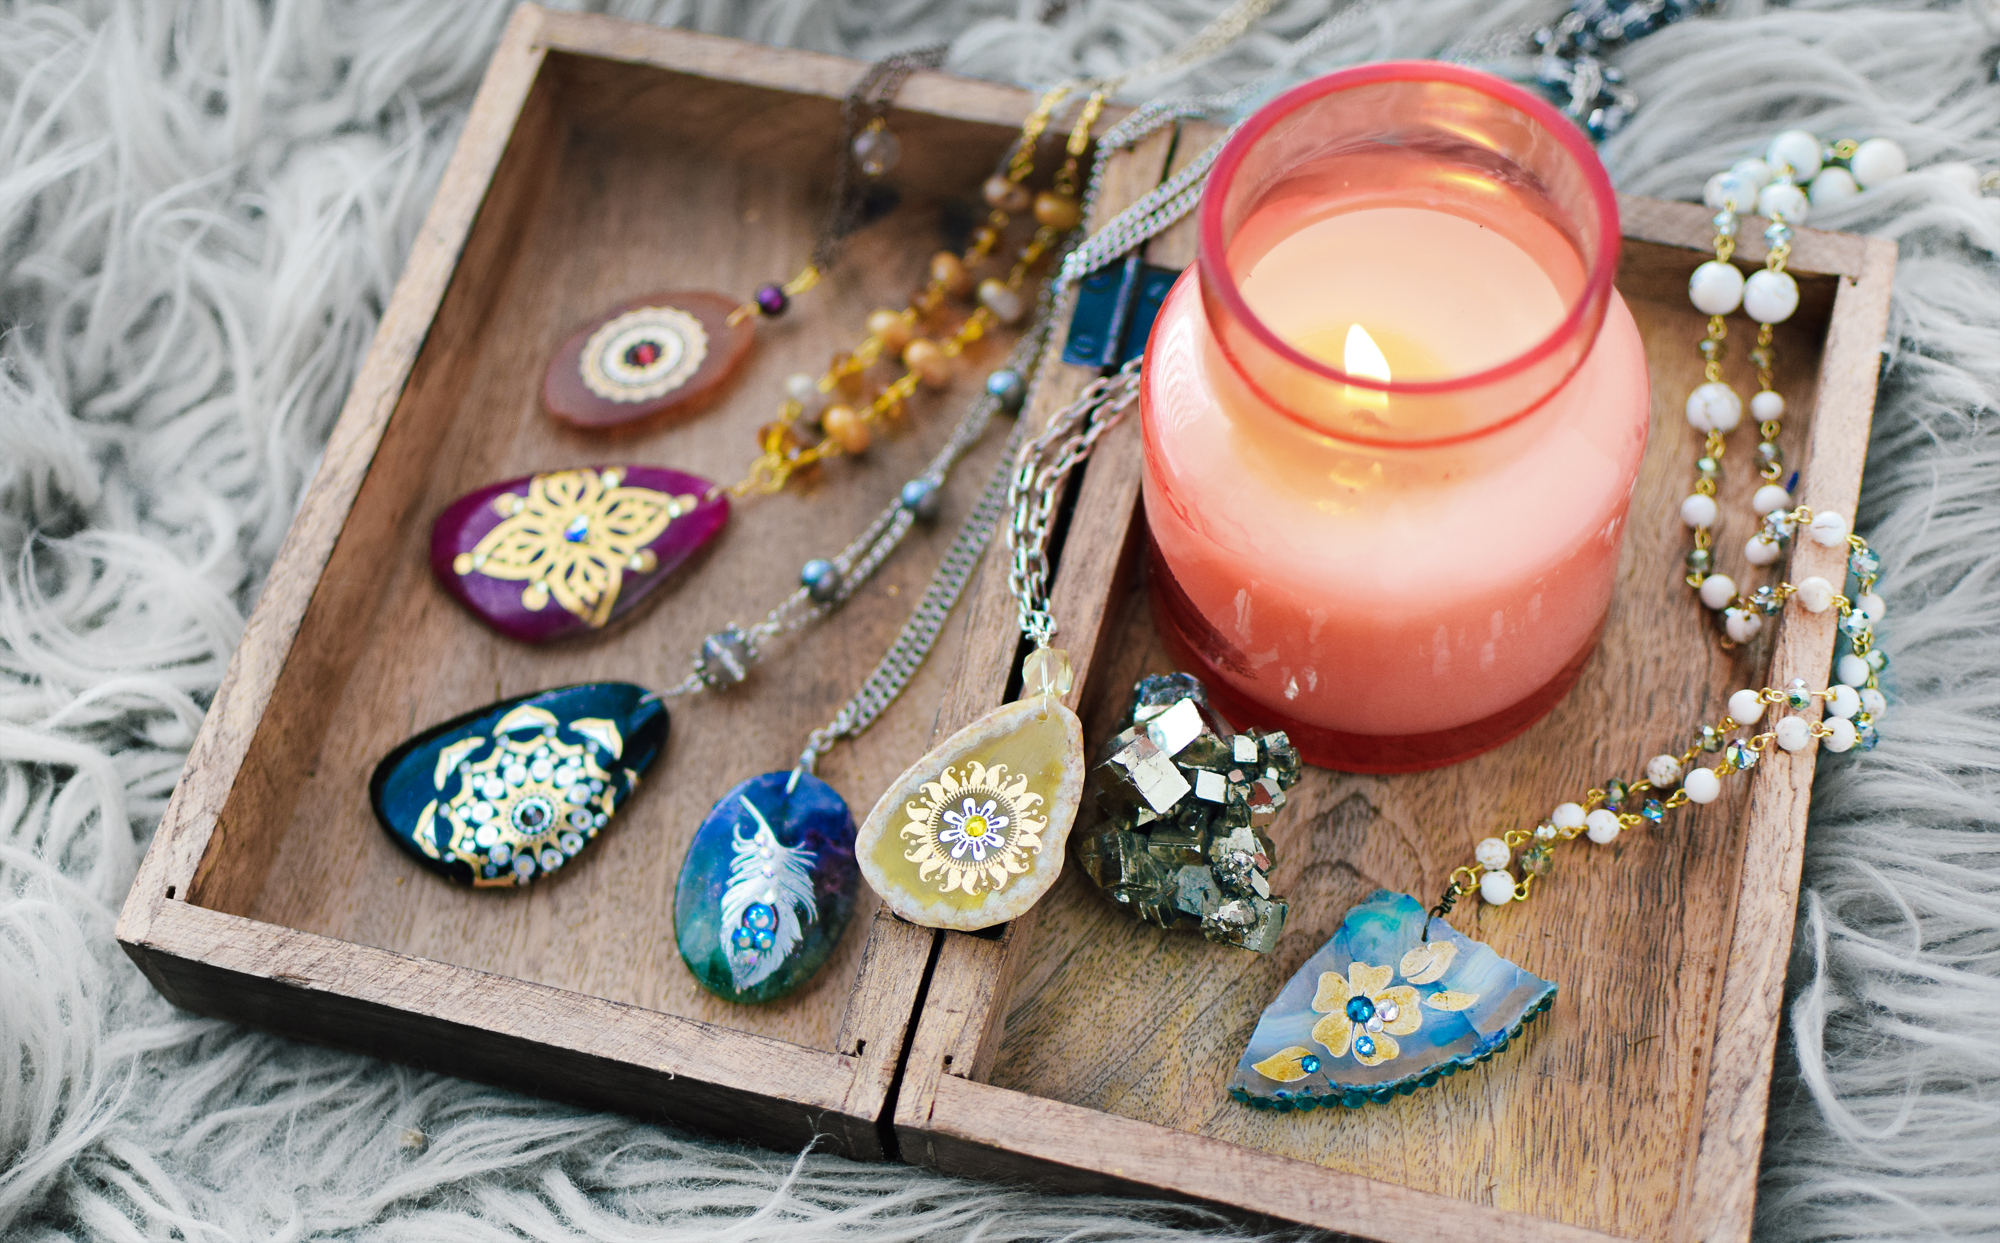 Boho Bliss Agates, by Quiet Lion / Allison Cooling